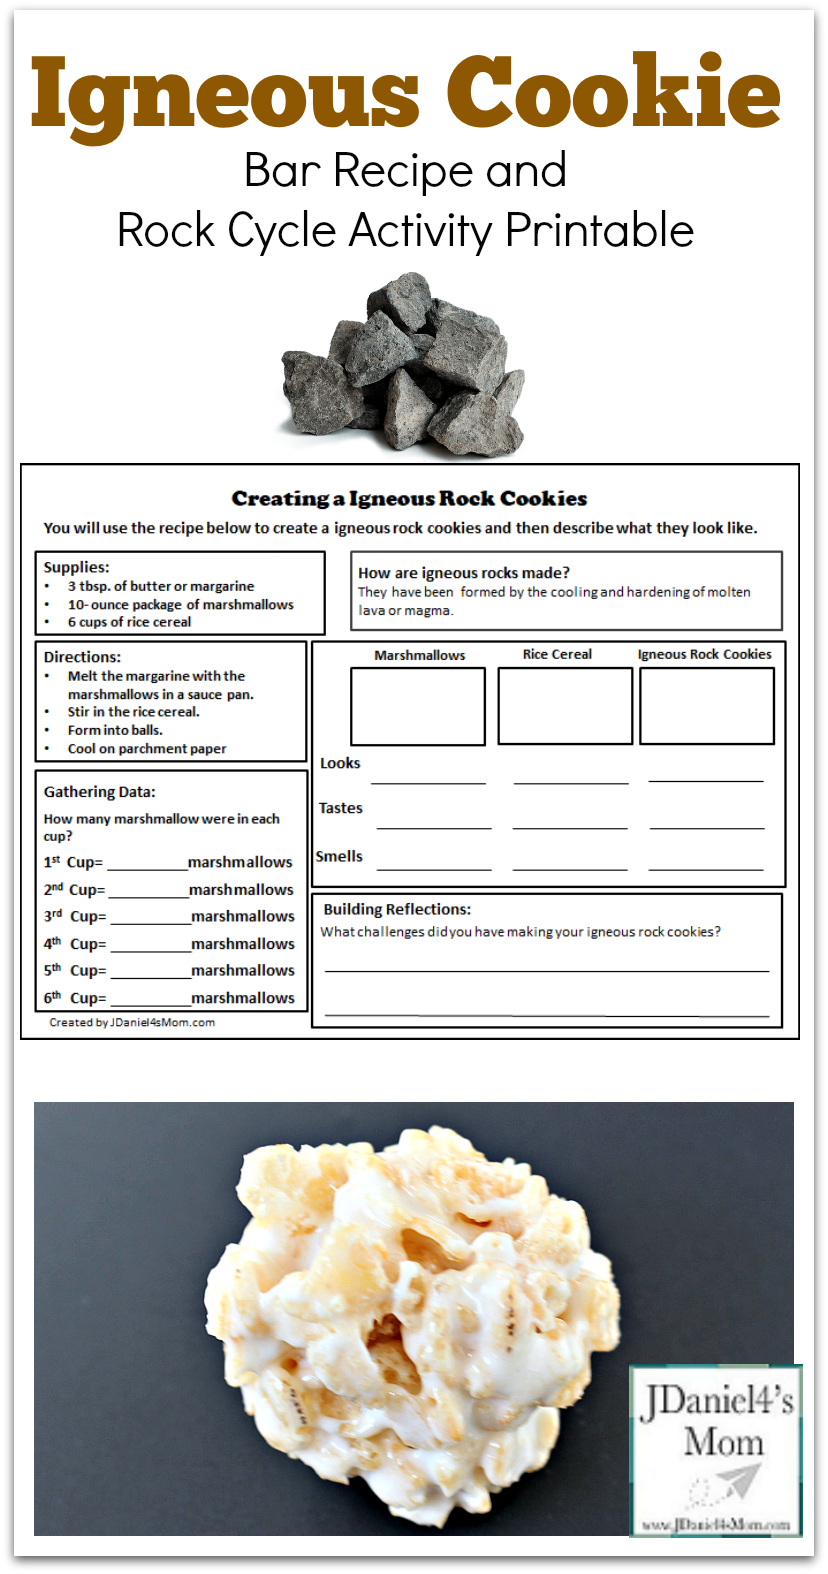 Igneous Cookie Bar Recipe and Rock Cycle Activity Printable - This is the third in a series of three rock themed recipes for kids to make. Each has its on recipe and exploration printable.